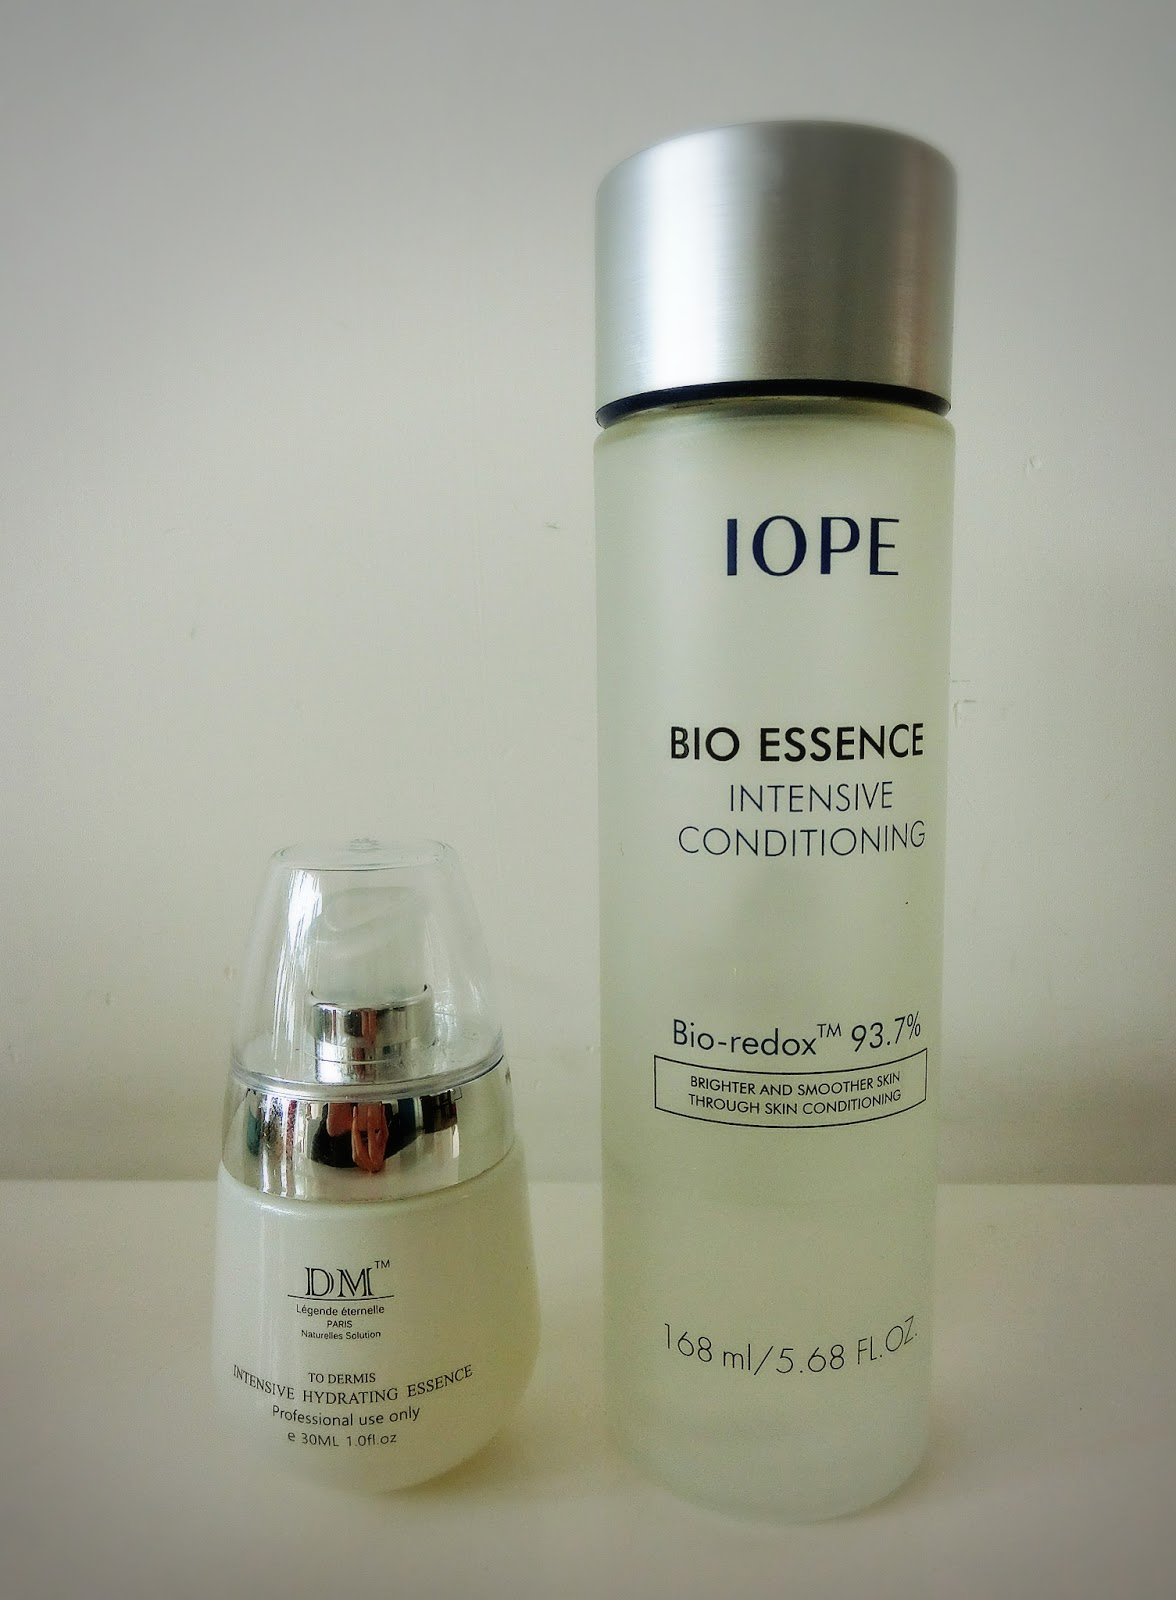 Genies Favourite Products December 2015 Shiseido Vital Perfection Treatment Cleansing Foam 30ml Before Applying The Dm One This Is My Second Bottle Of Iope Essence But Im Not Sure Whether I Would Purchase A Third Since Dont Use It As